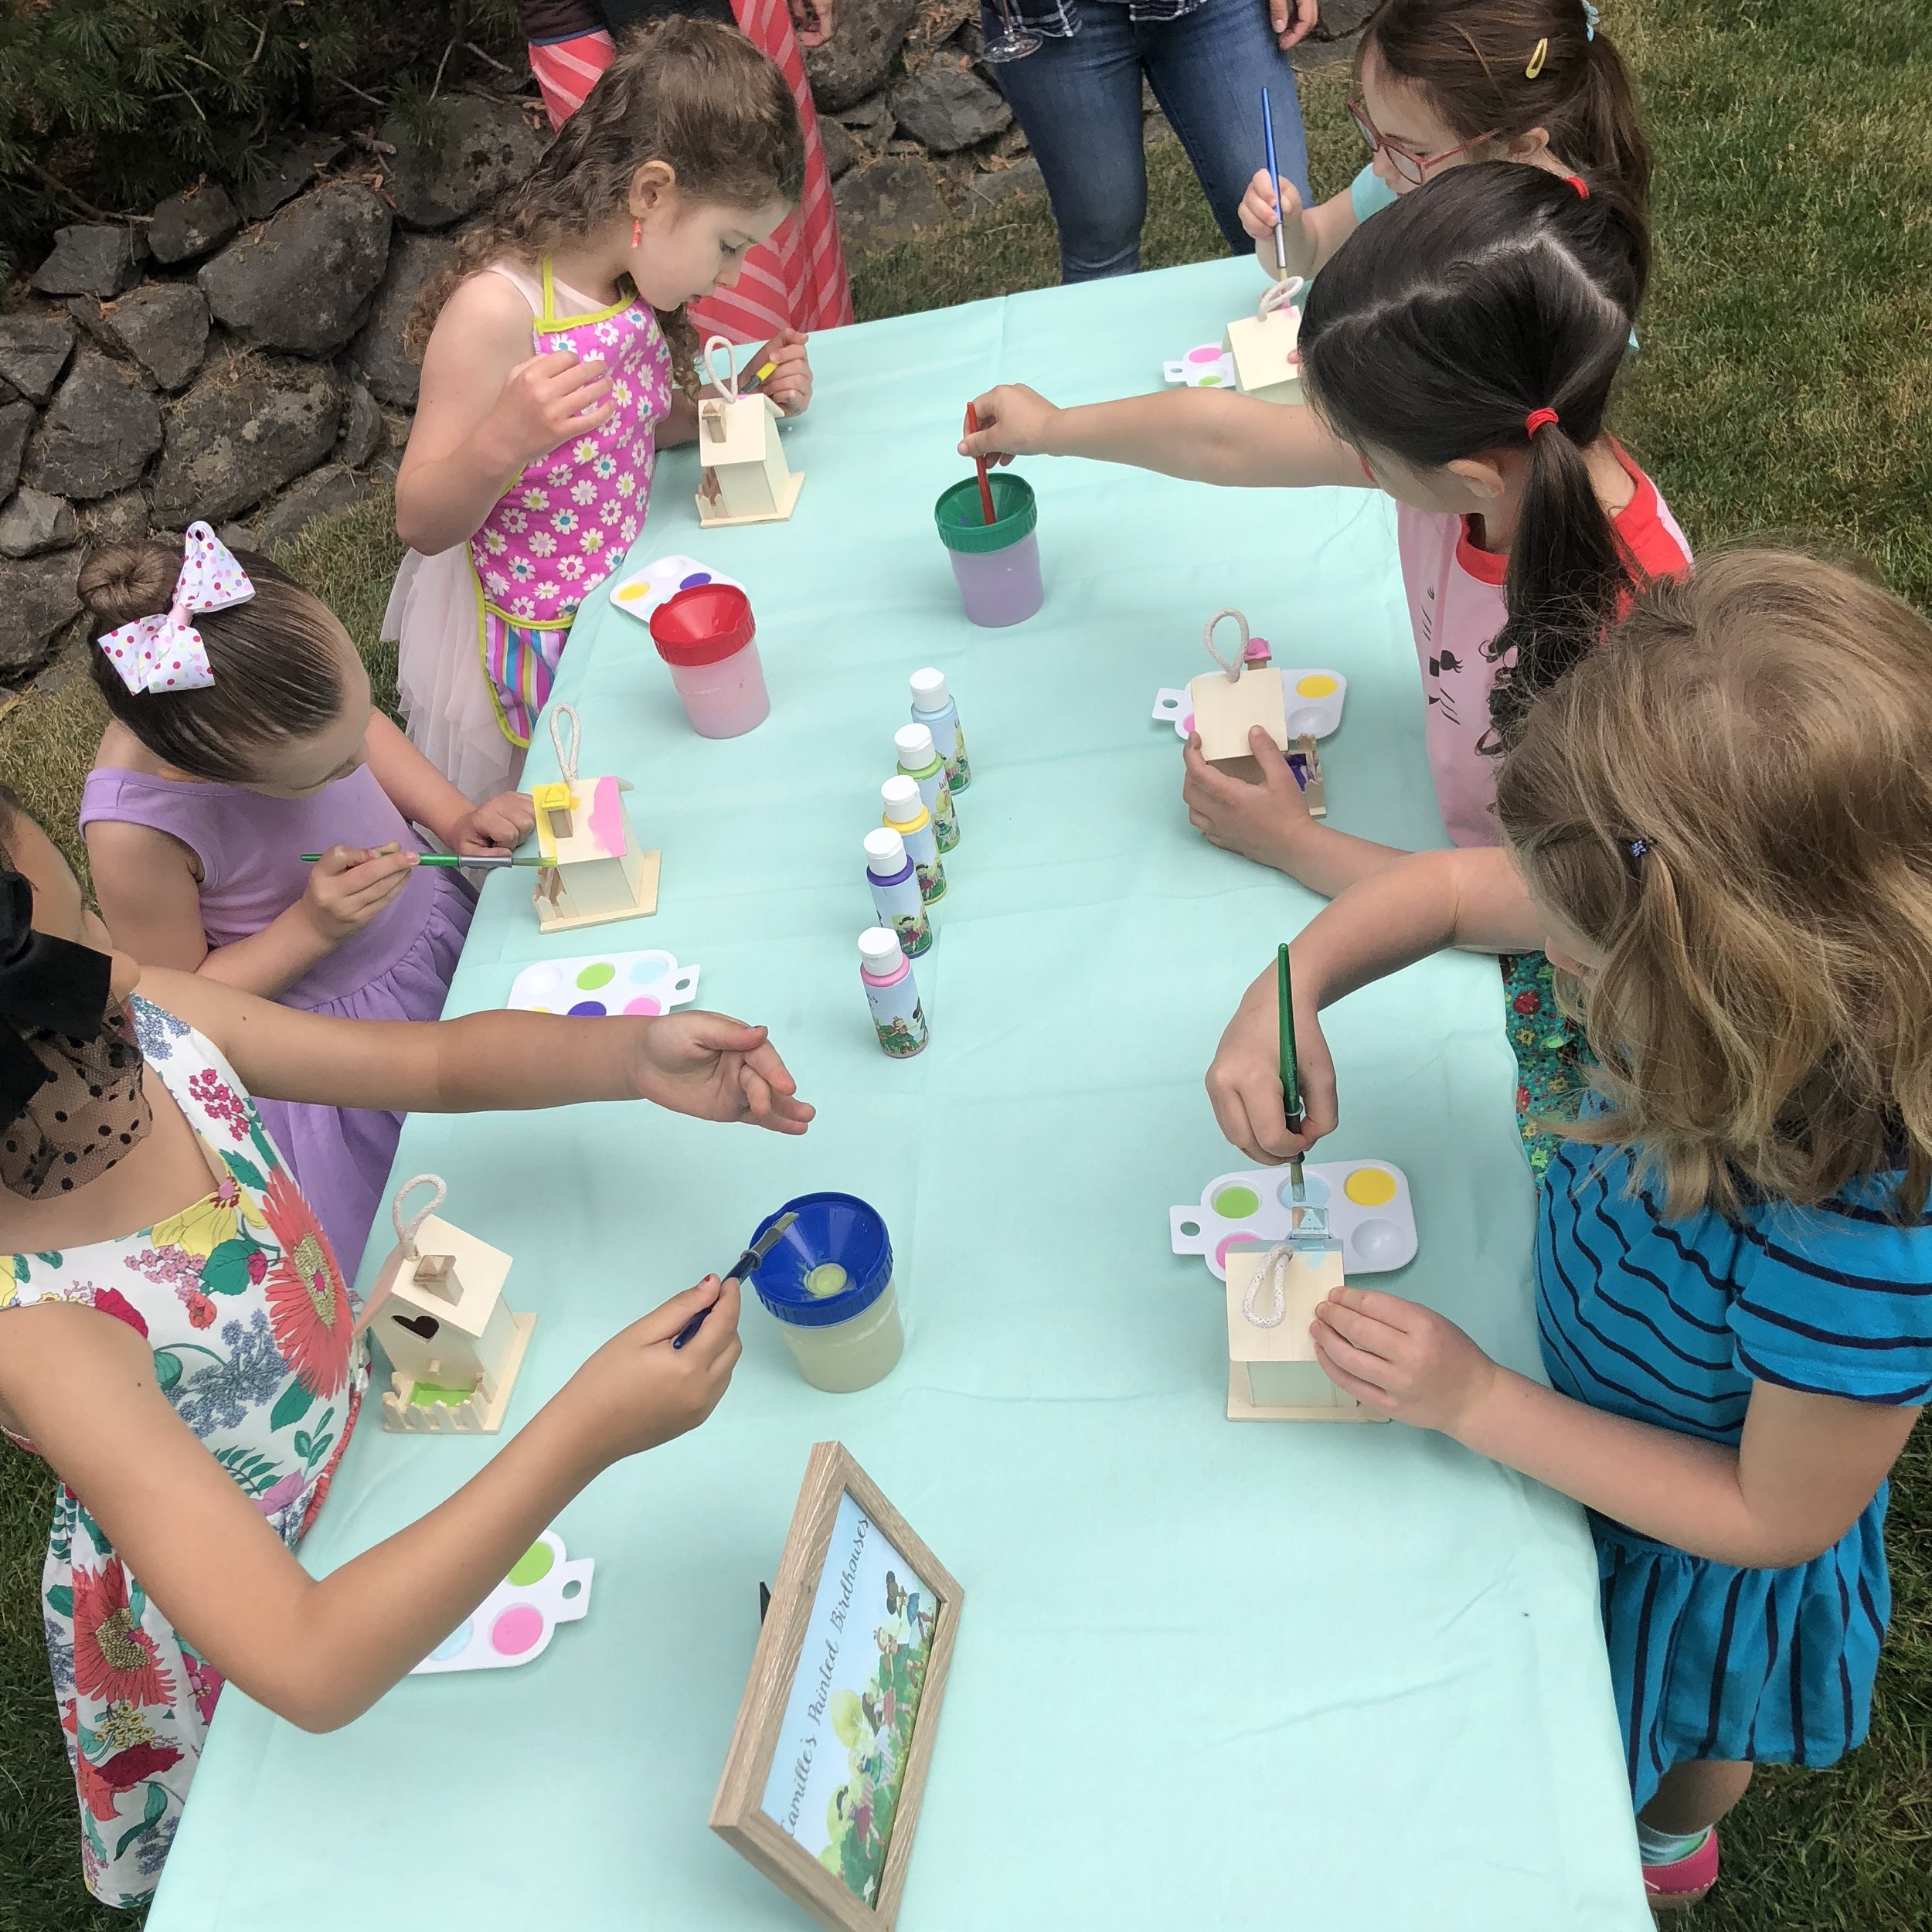 Party guests painted birdhouses at the first activity station.